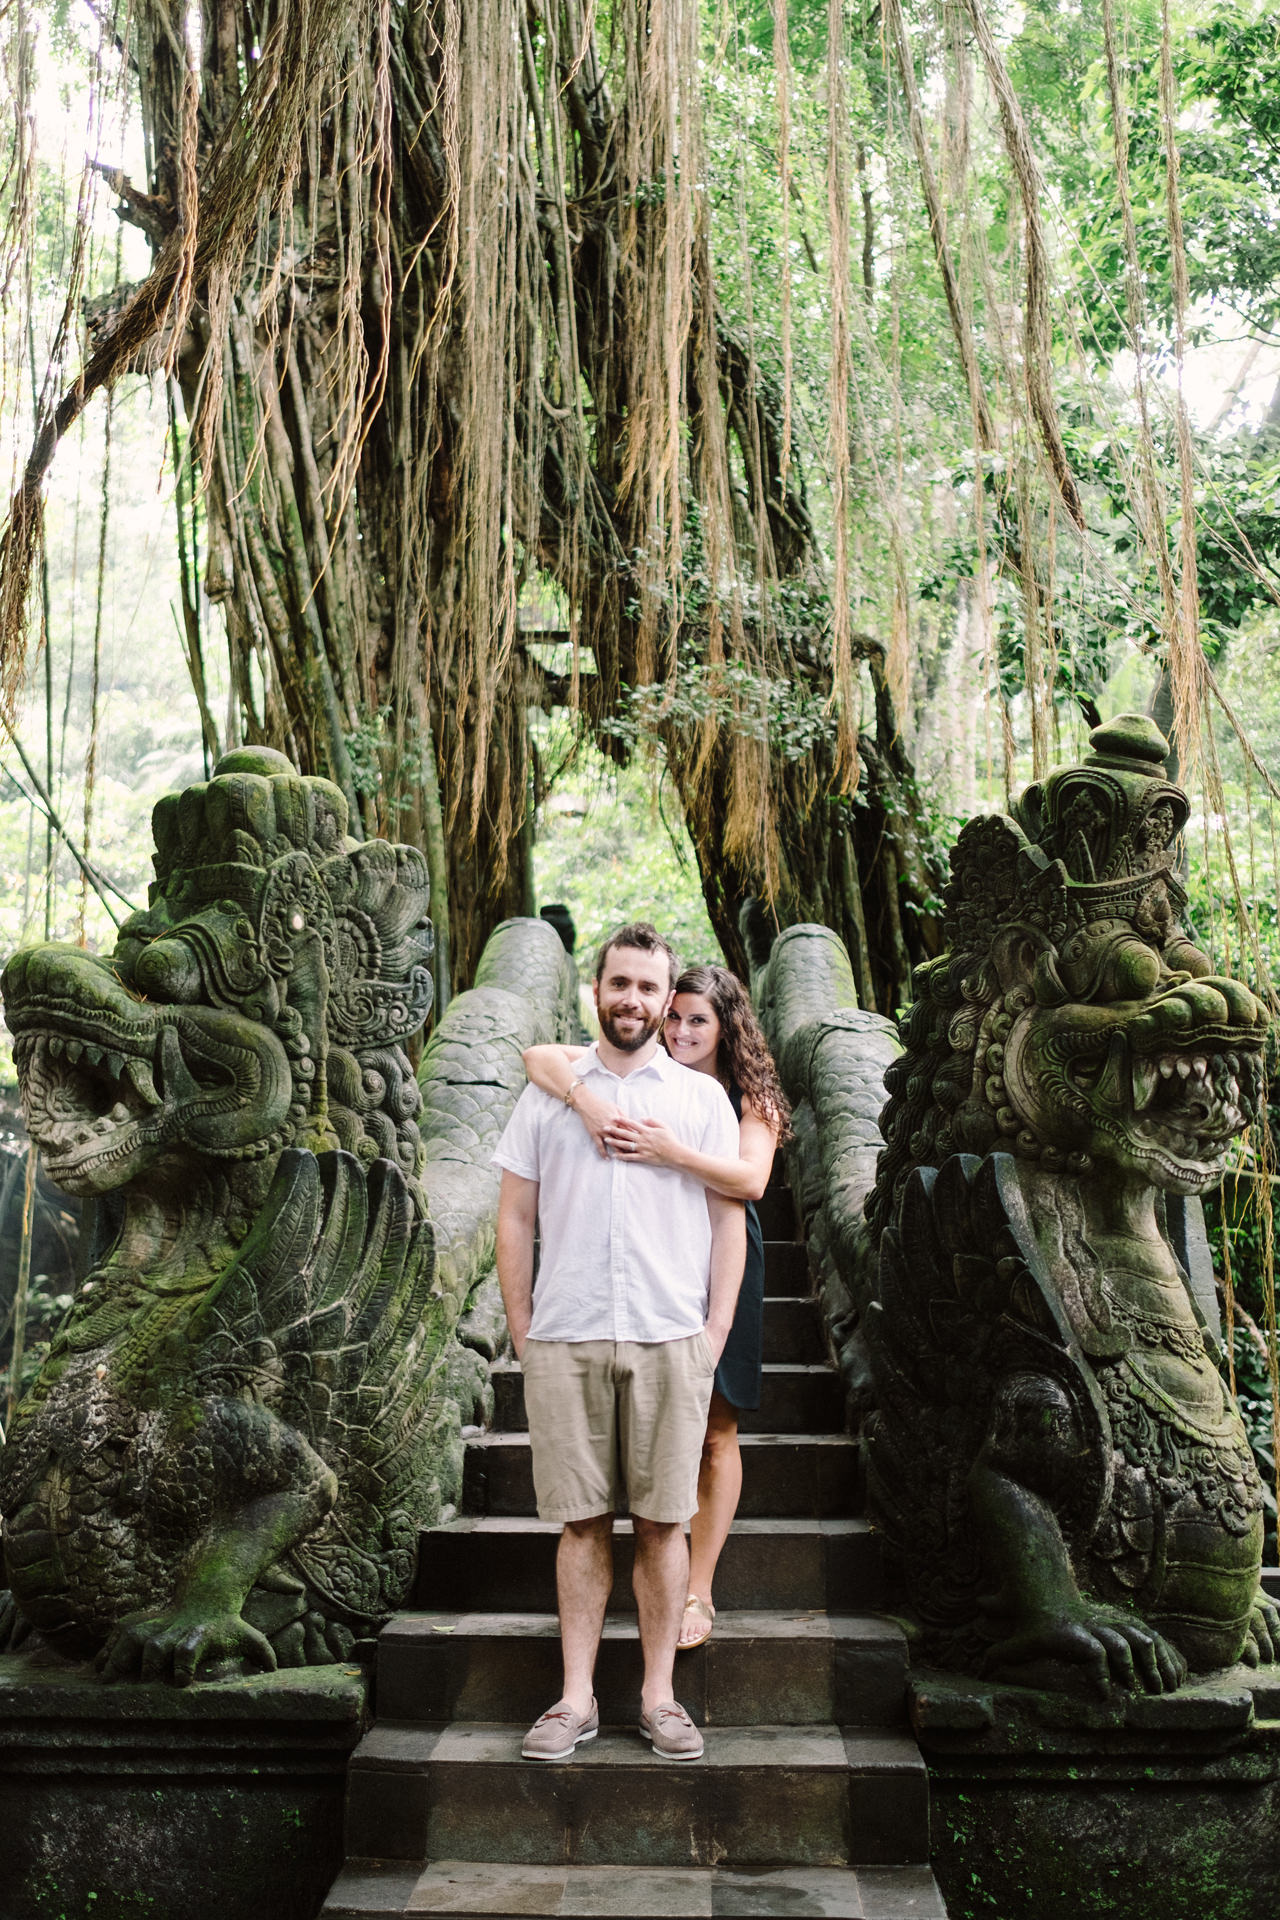 S&T: Bali Honeymoon Photography in Monkey Forest as Wedding Present 1